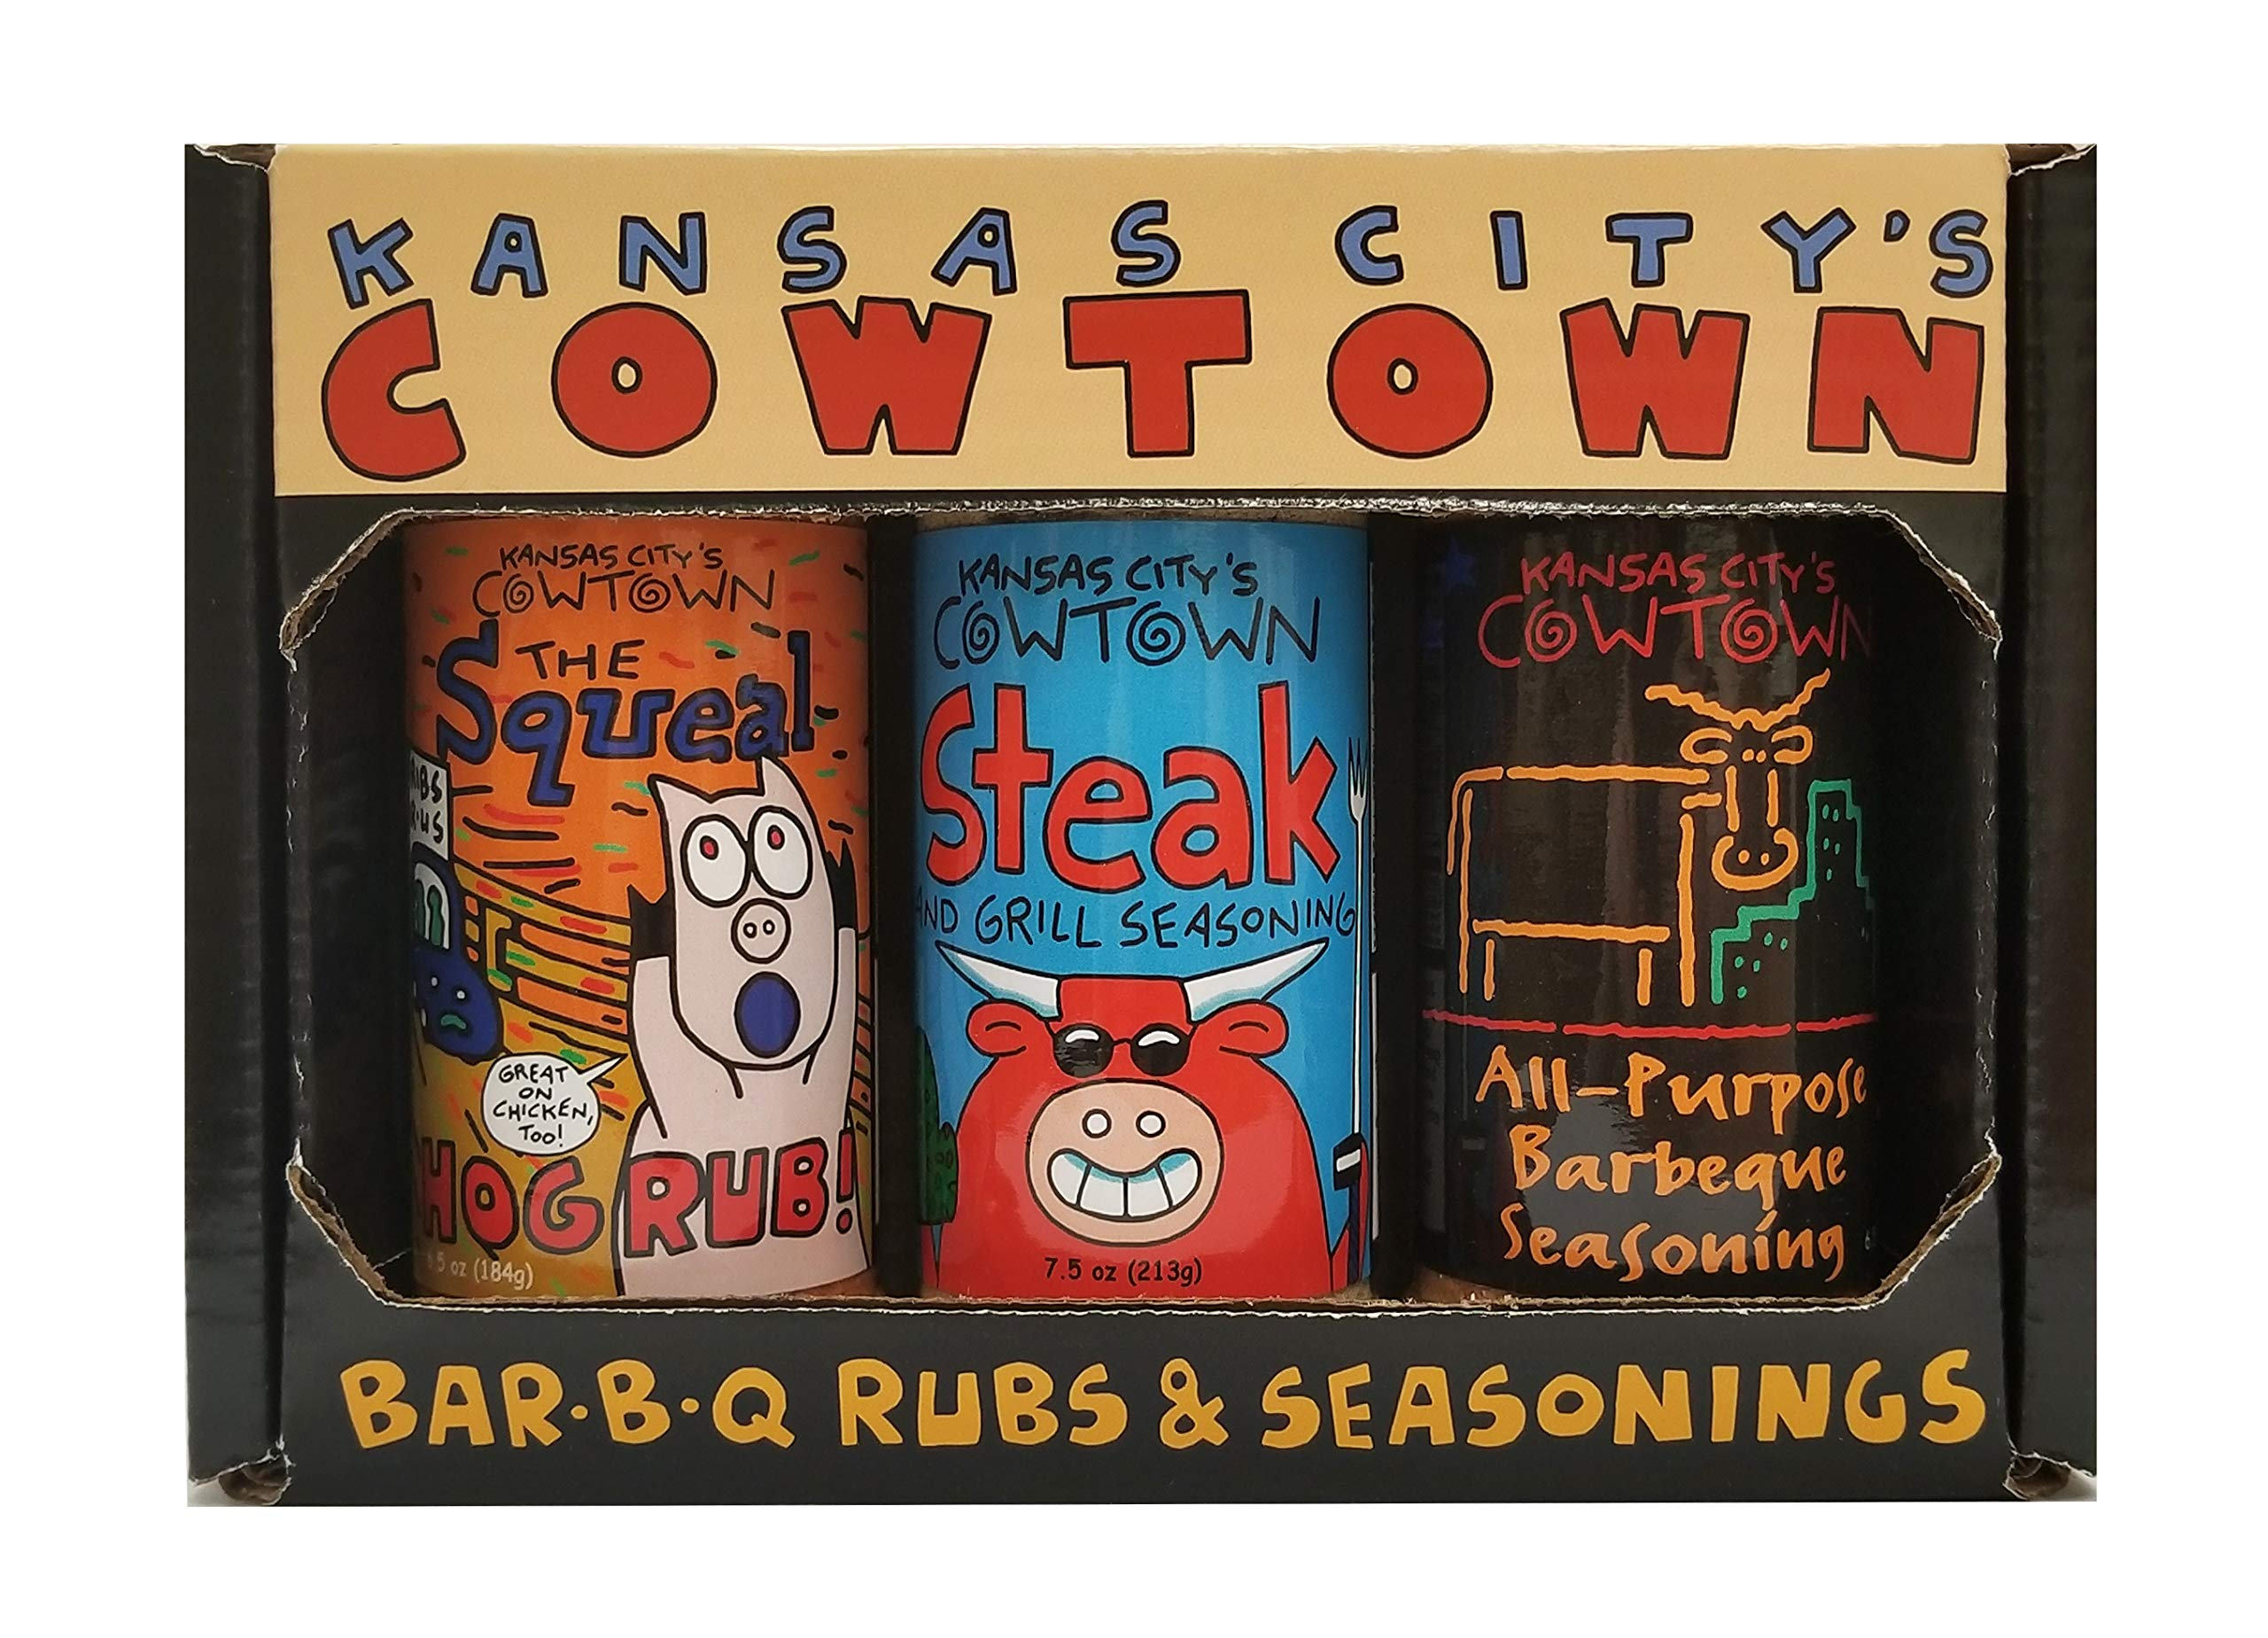 Kansas City's Cowtown BBQ Rubs and Seasonings Gift Box - The Squeal, Steak and Grill Seasoning, and All-Purpose Barbecue Seasoning